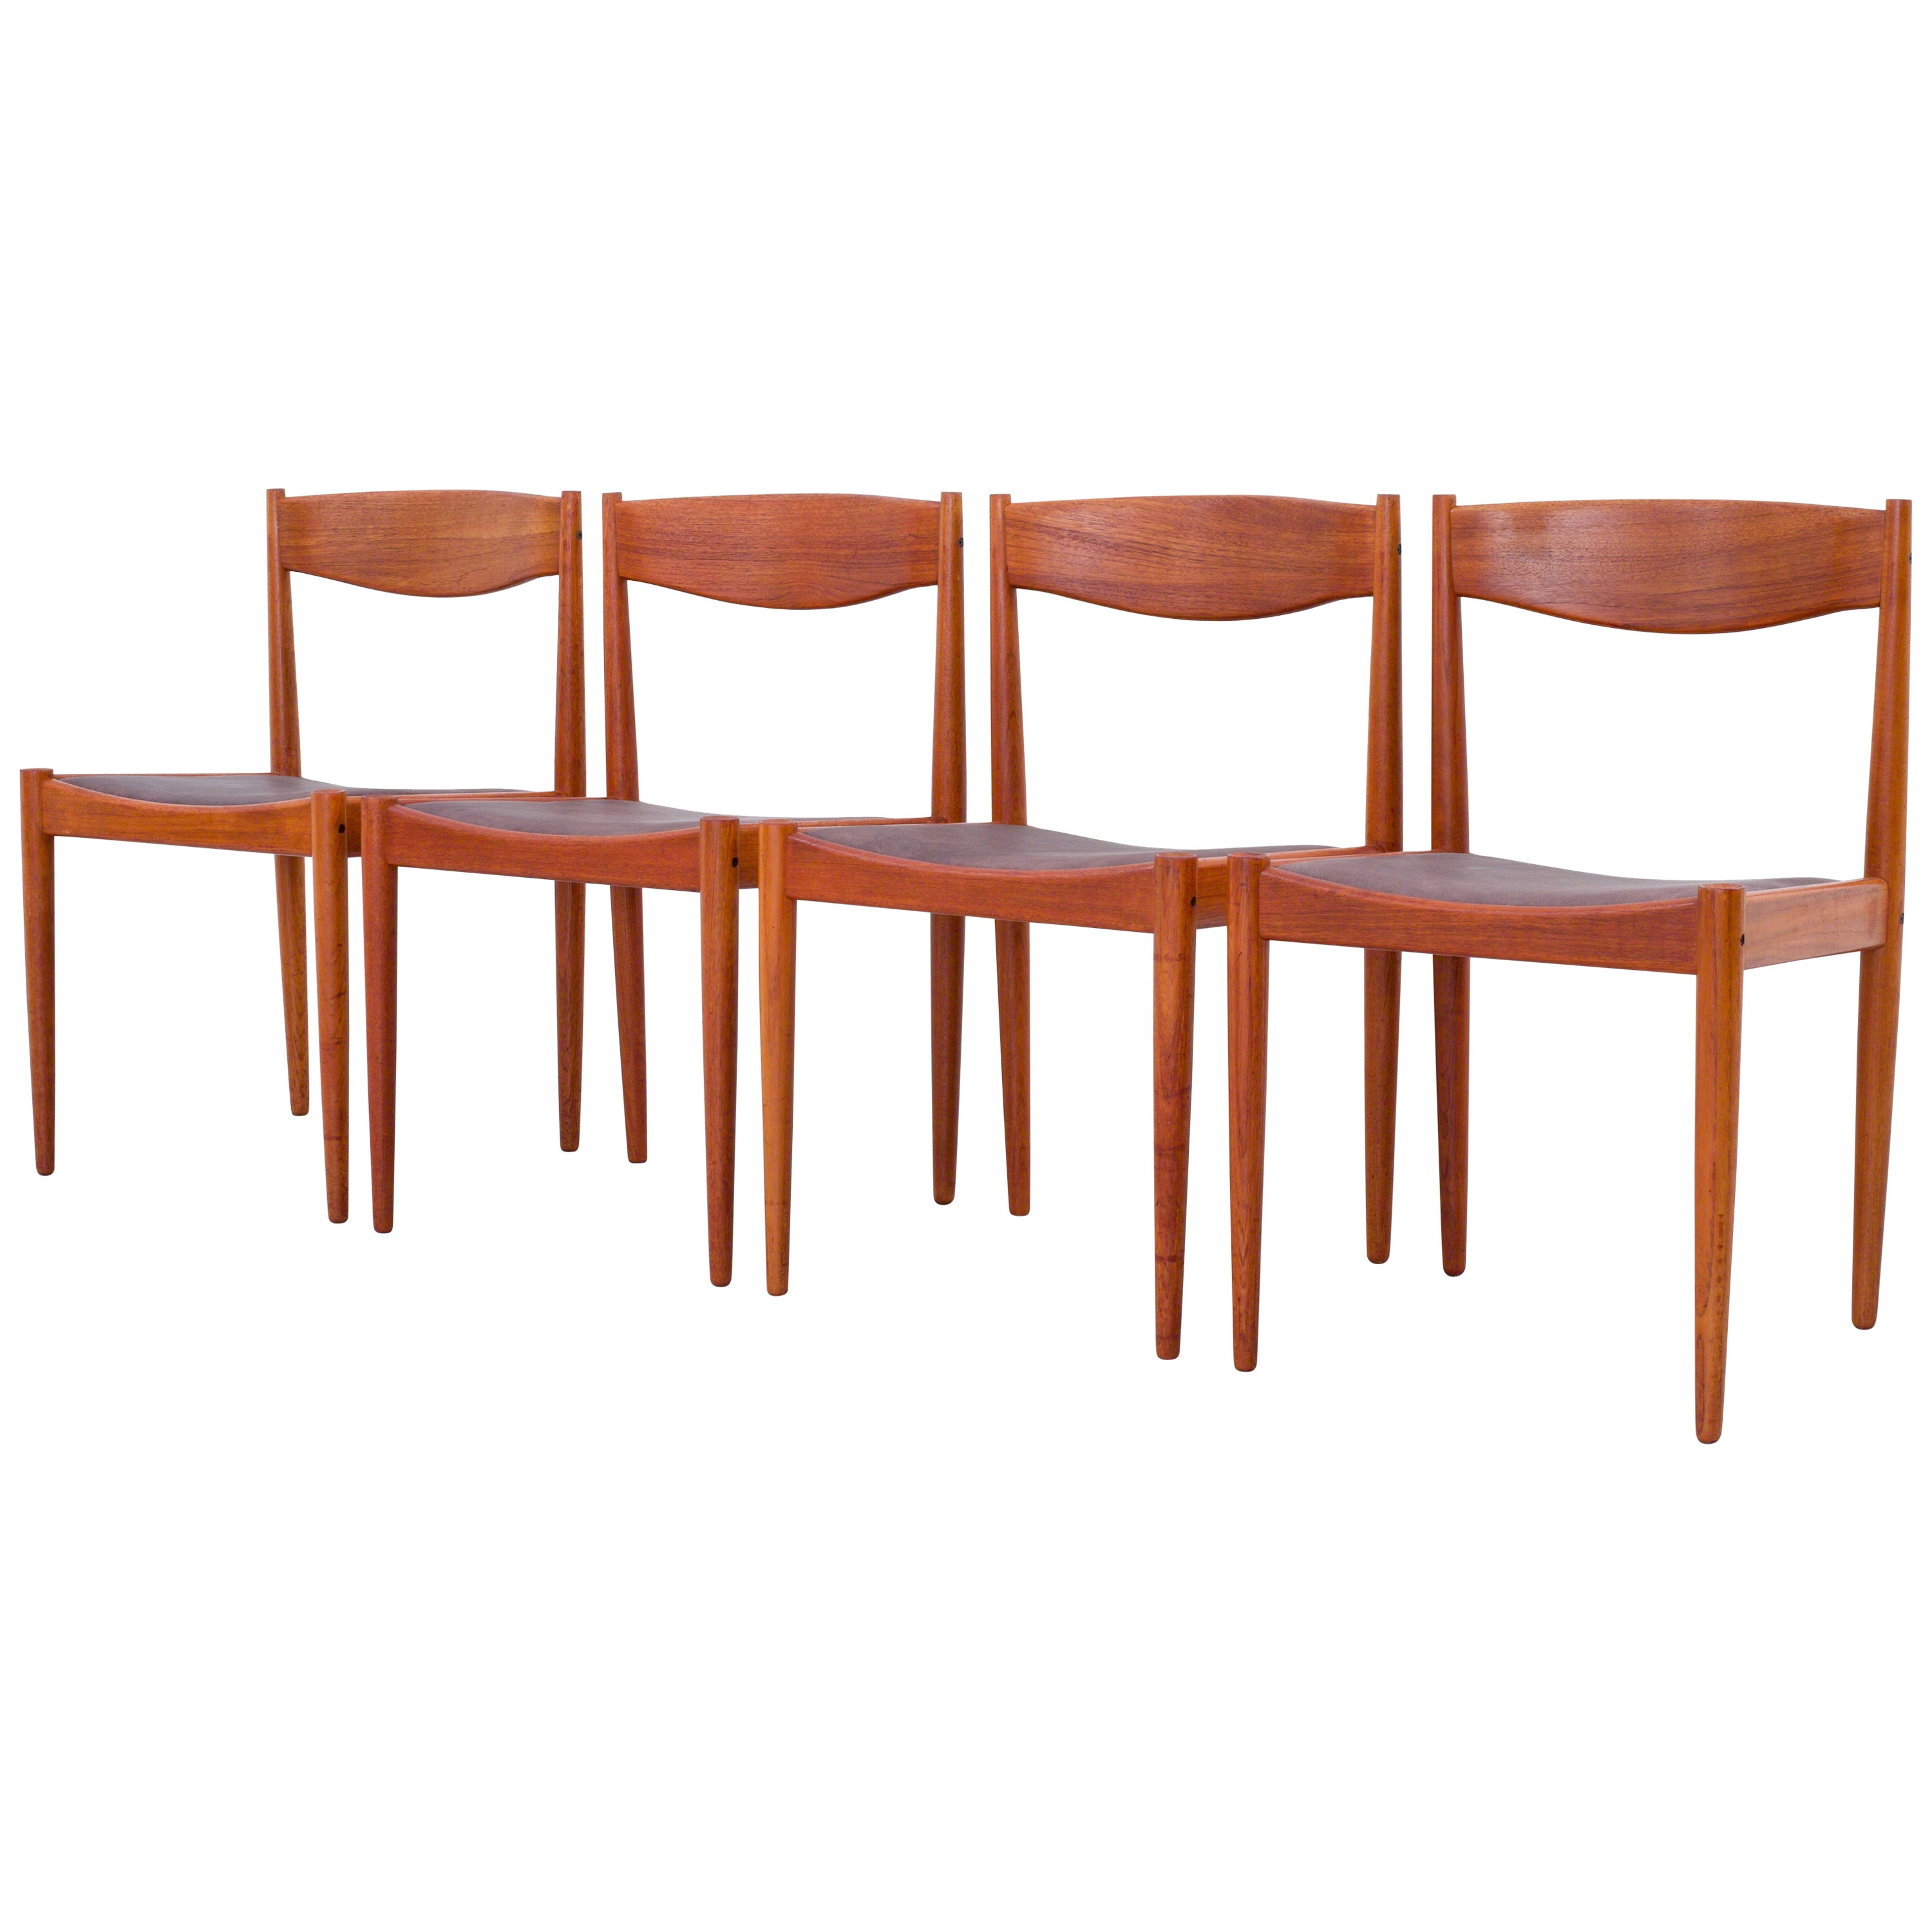 Set of 4 Dining Chairs in Teak by H.W. Klein for Bramin Mobler, Denmark, 1960